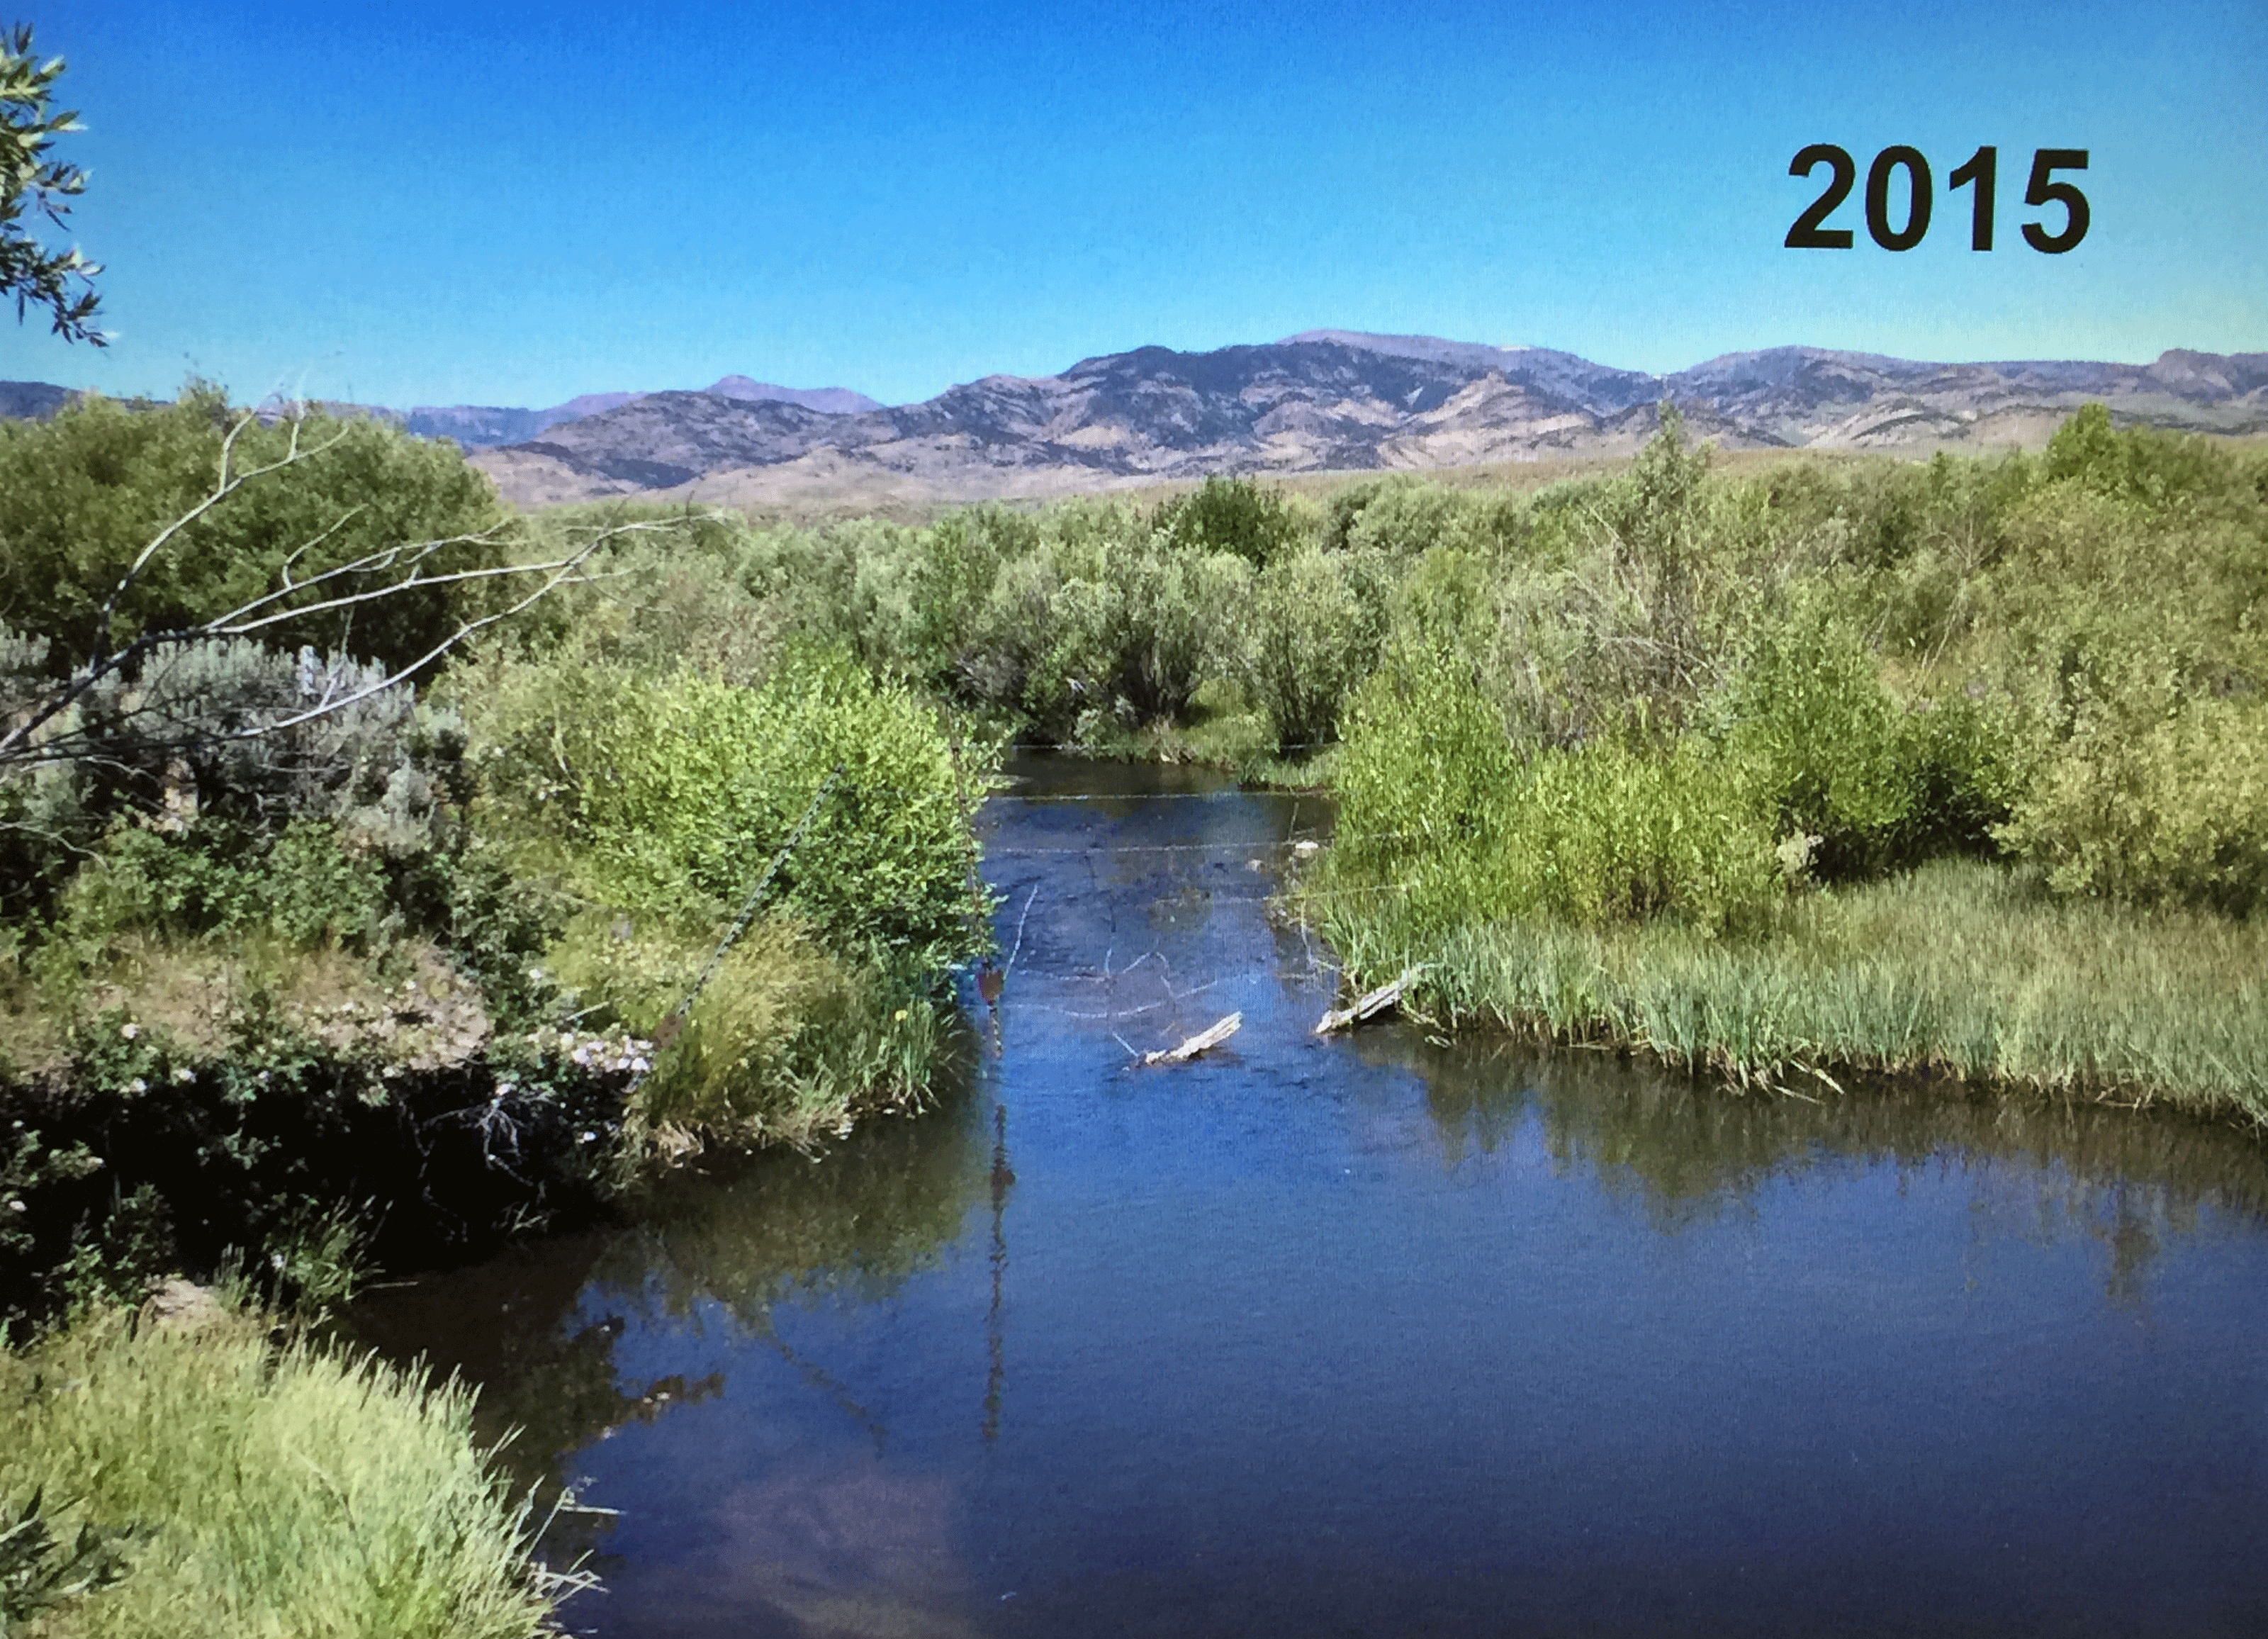 Here is the same Cottonwood Guest Ranch riparian area in 2015. Since these areas account for only around 2% of the landscape in the arid West, protecting the water resource is vital for both cattle and wildlife.